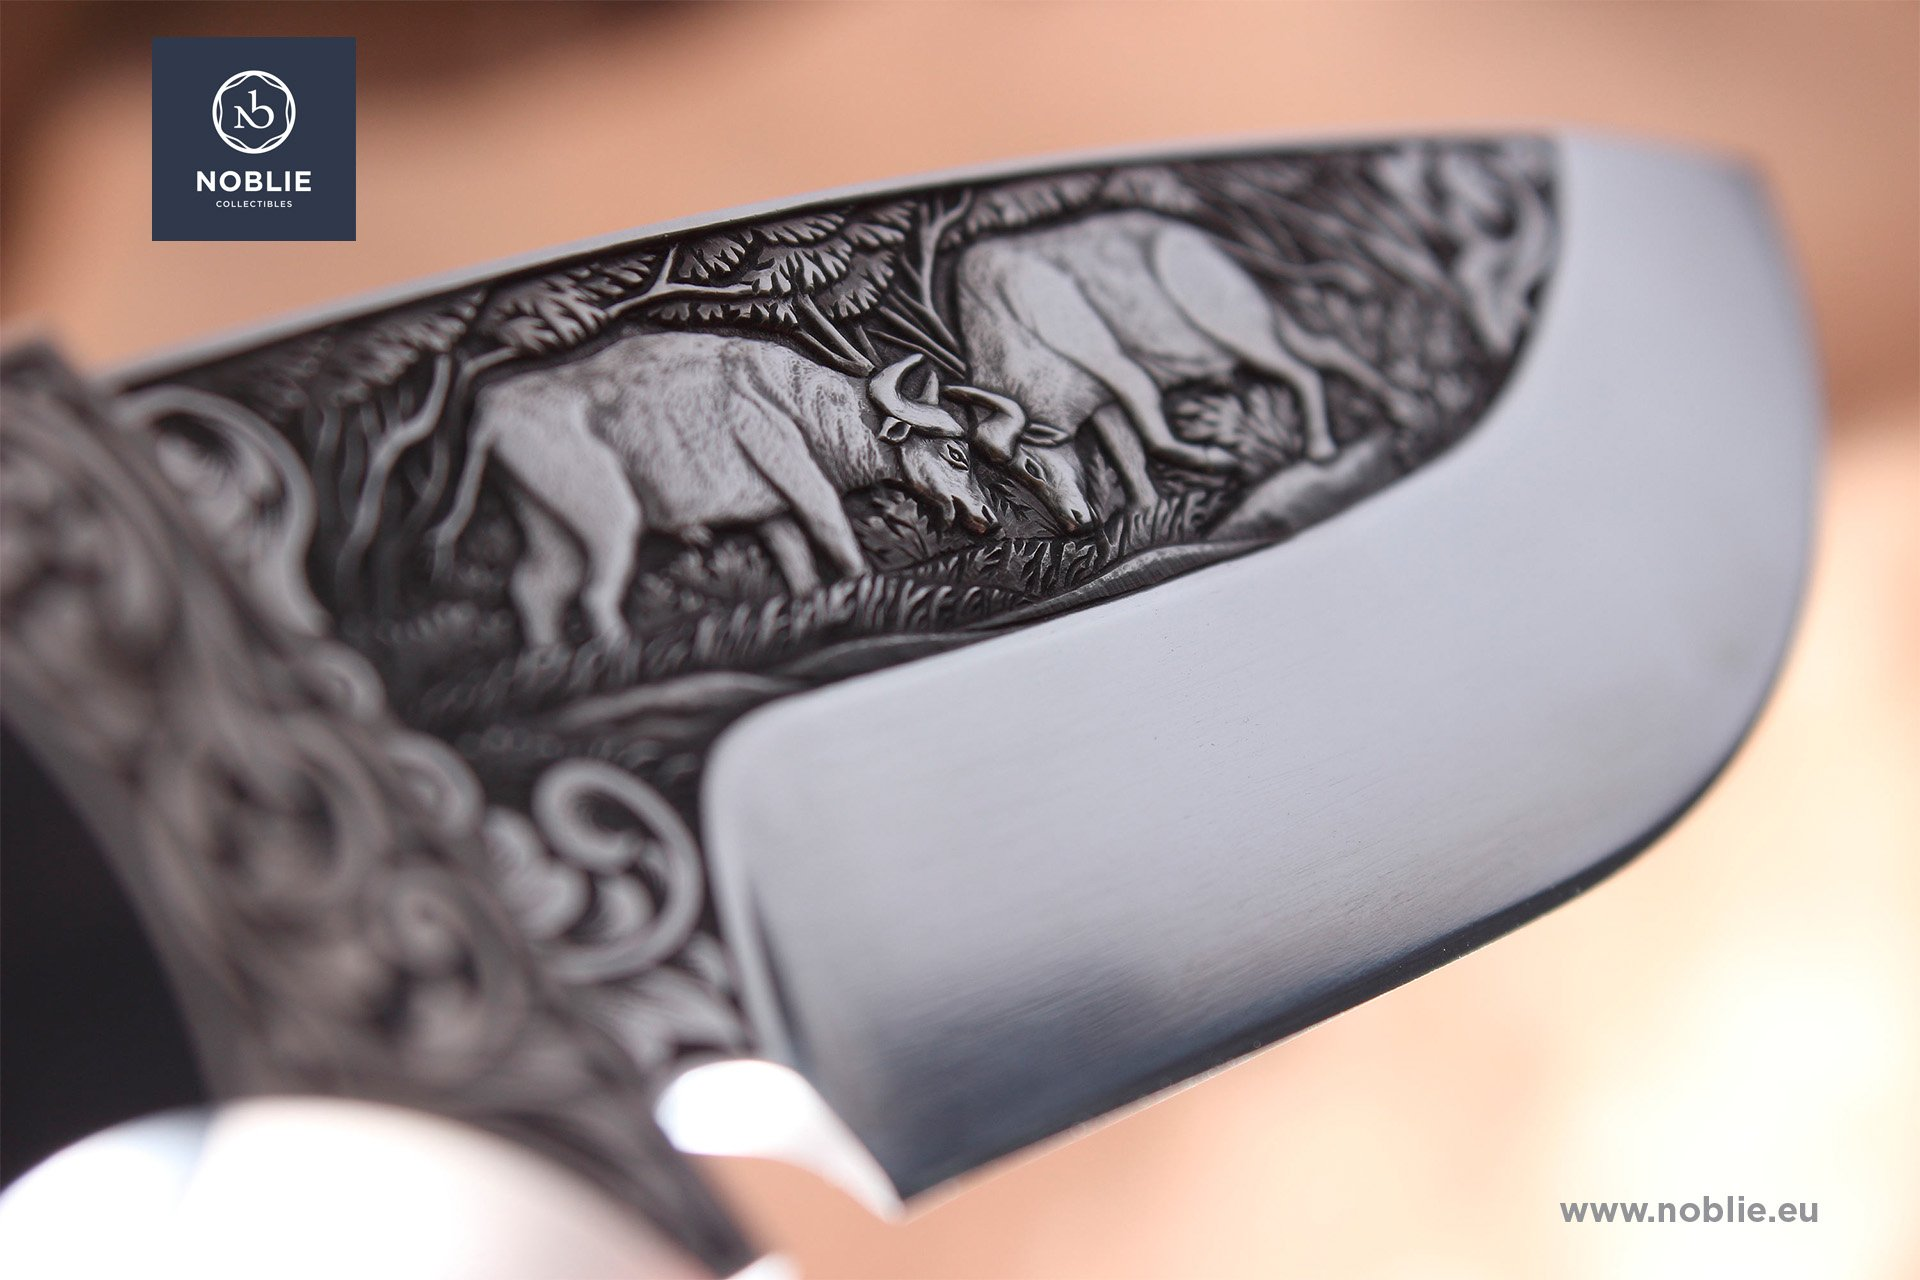 New engraved custom knives by NOBLIE